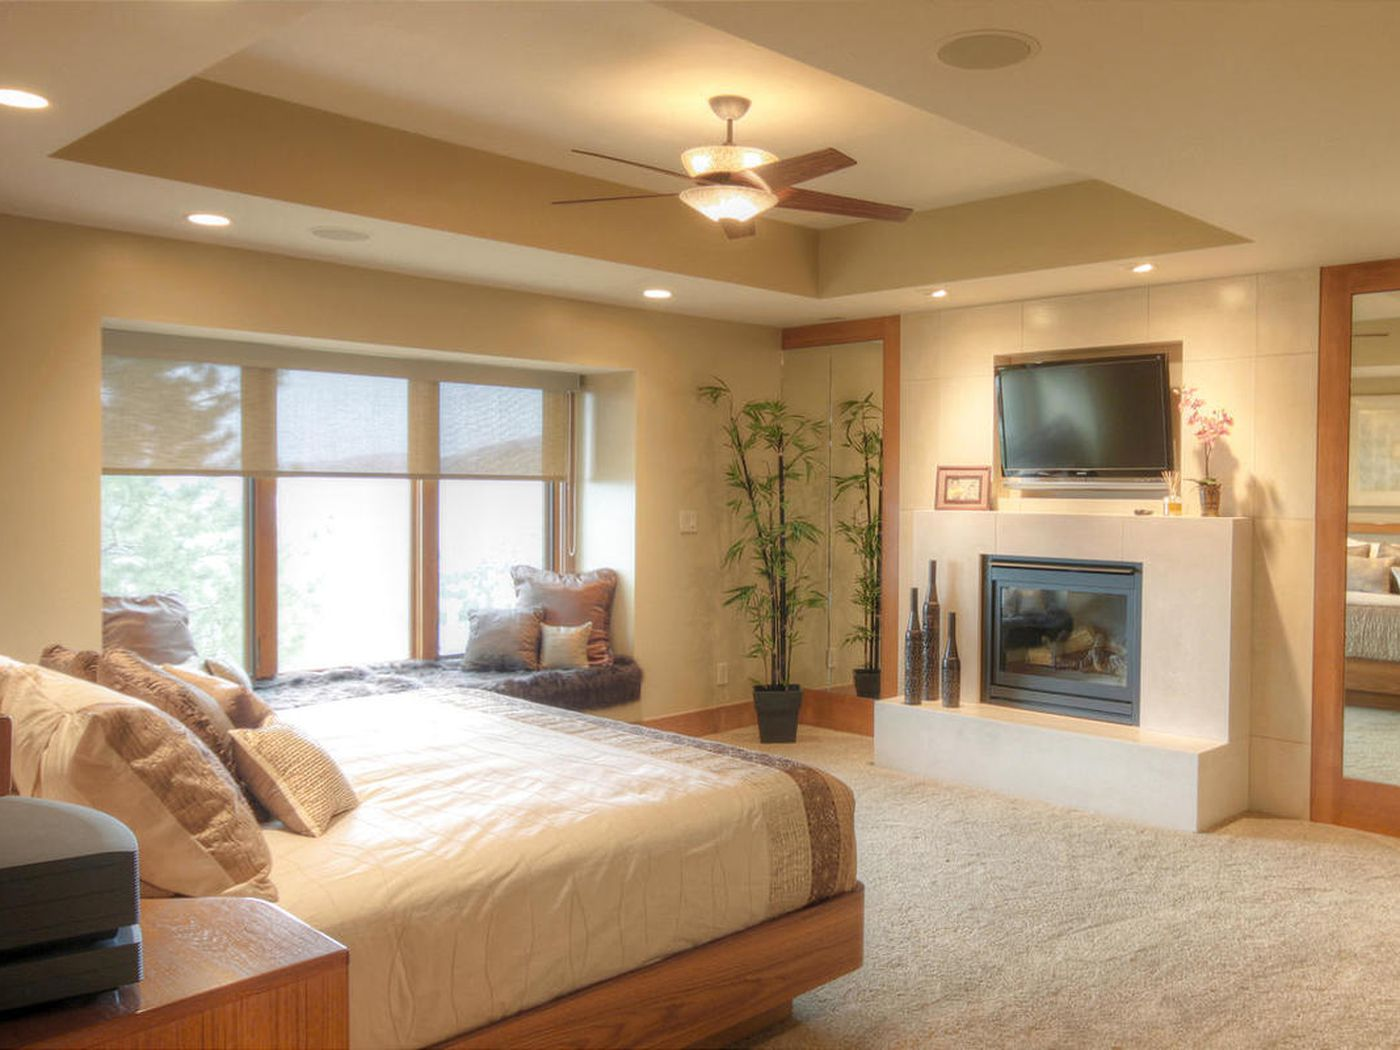 Renovation Solutions Changing Ceiling Gives Feeling Of More Space In Your Home Deseret News